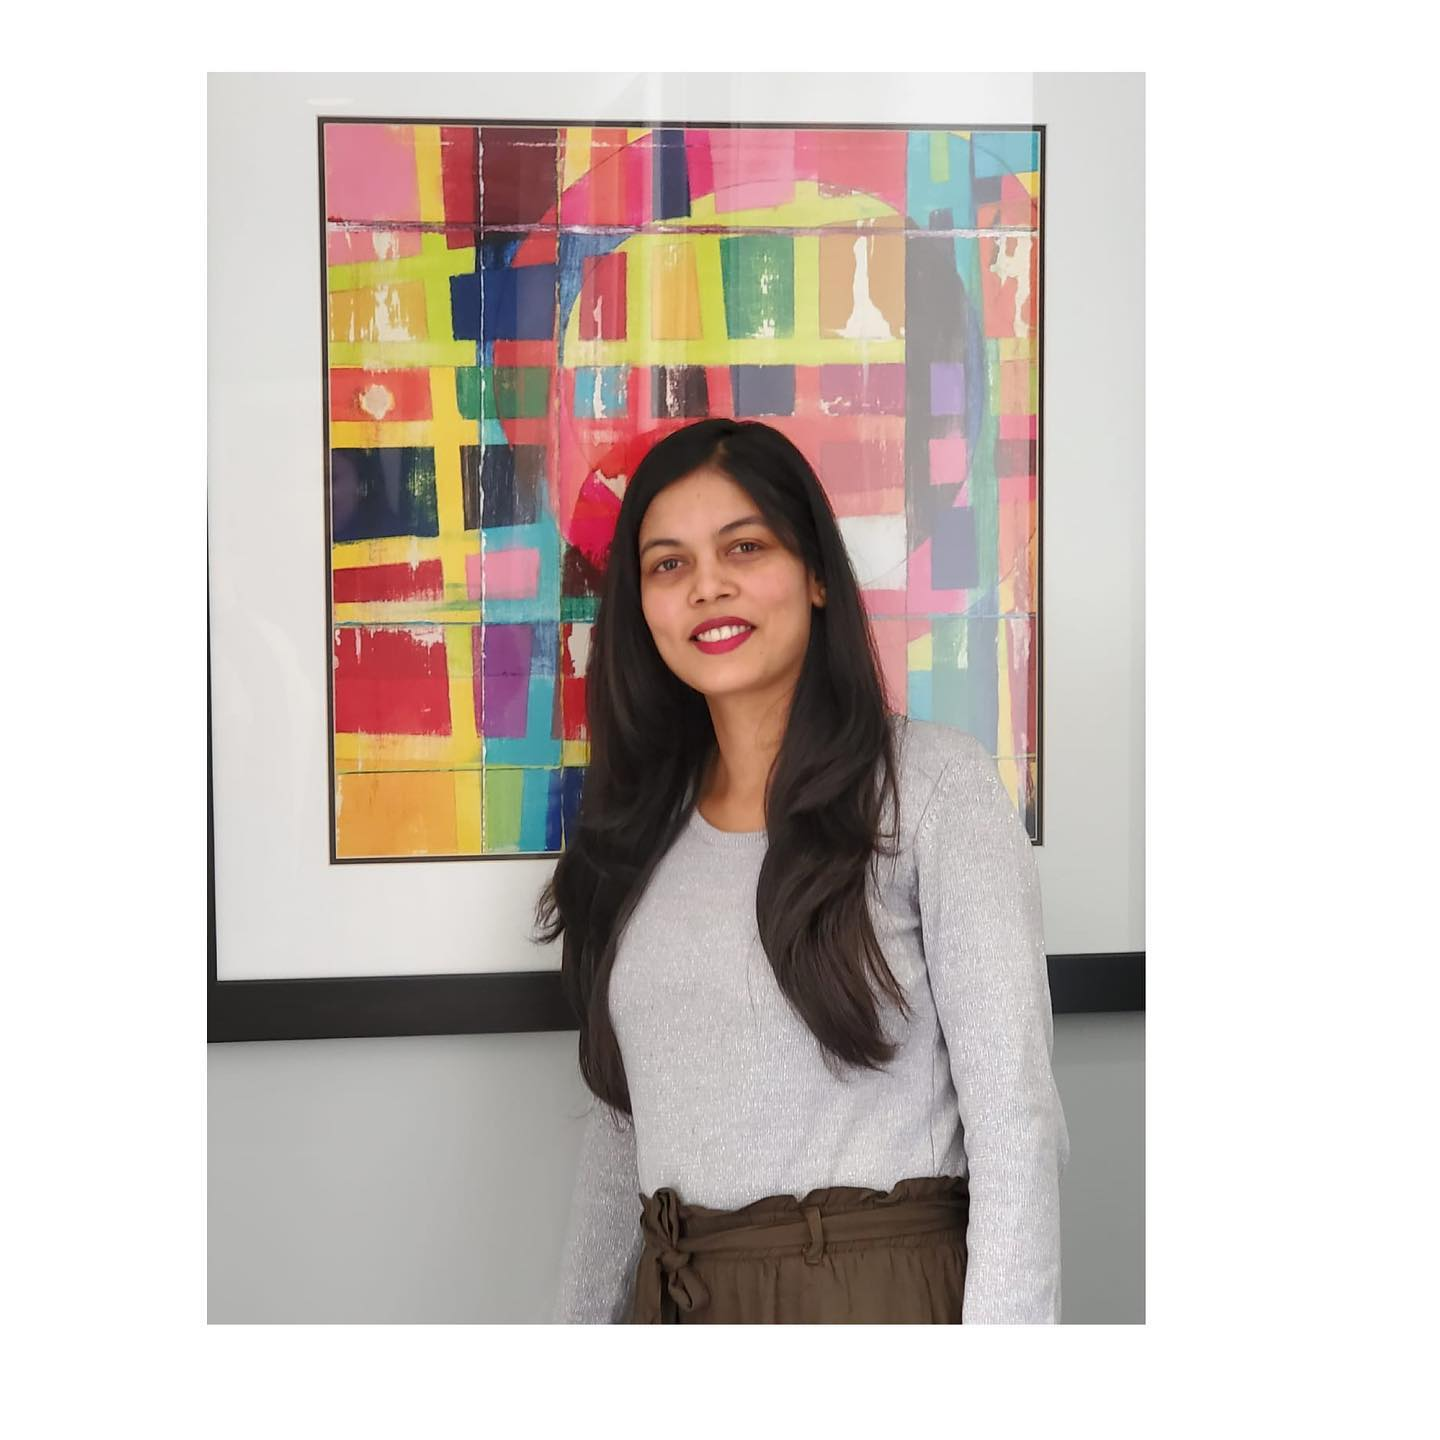 That is a big smile from our temp coordinator, Meena Pandit. She has been with us giving her best since last year. @meenapandit.mba2012 Thank you for your hard work and we really appreciate your efforts. #surrey #tempjobs #staffingsolutions